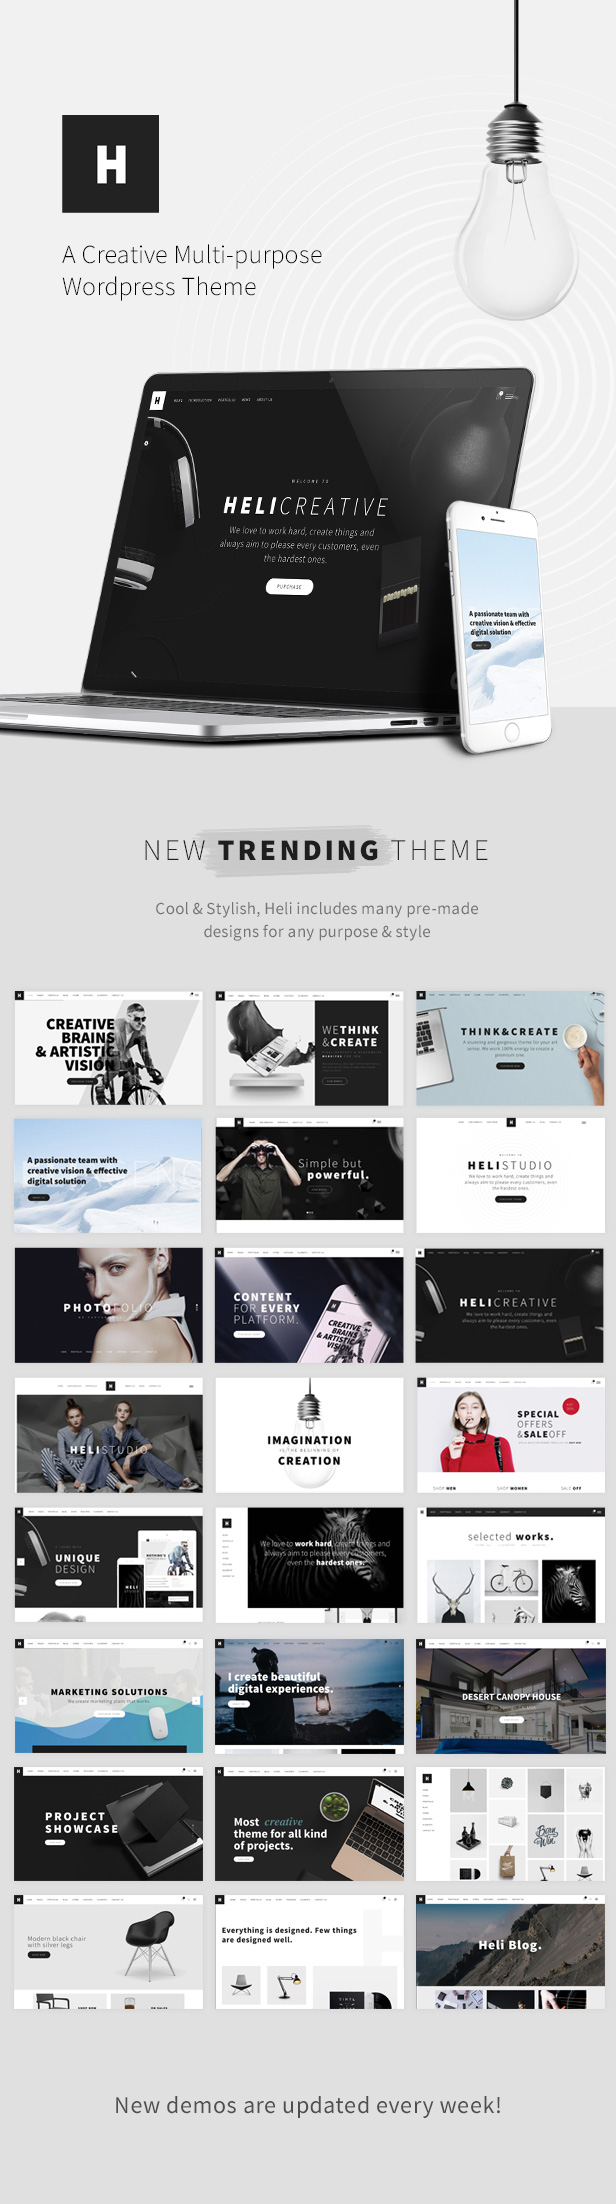 Minimal Creative Black and White WordPress Theme - 40+ multipurpose demo wordpress theme